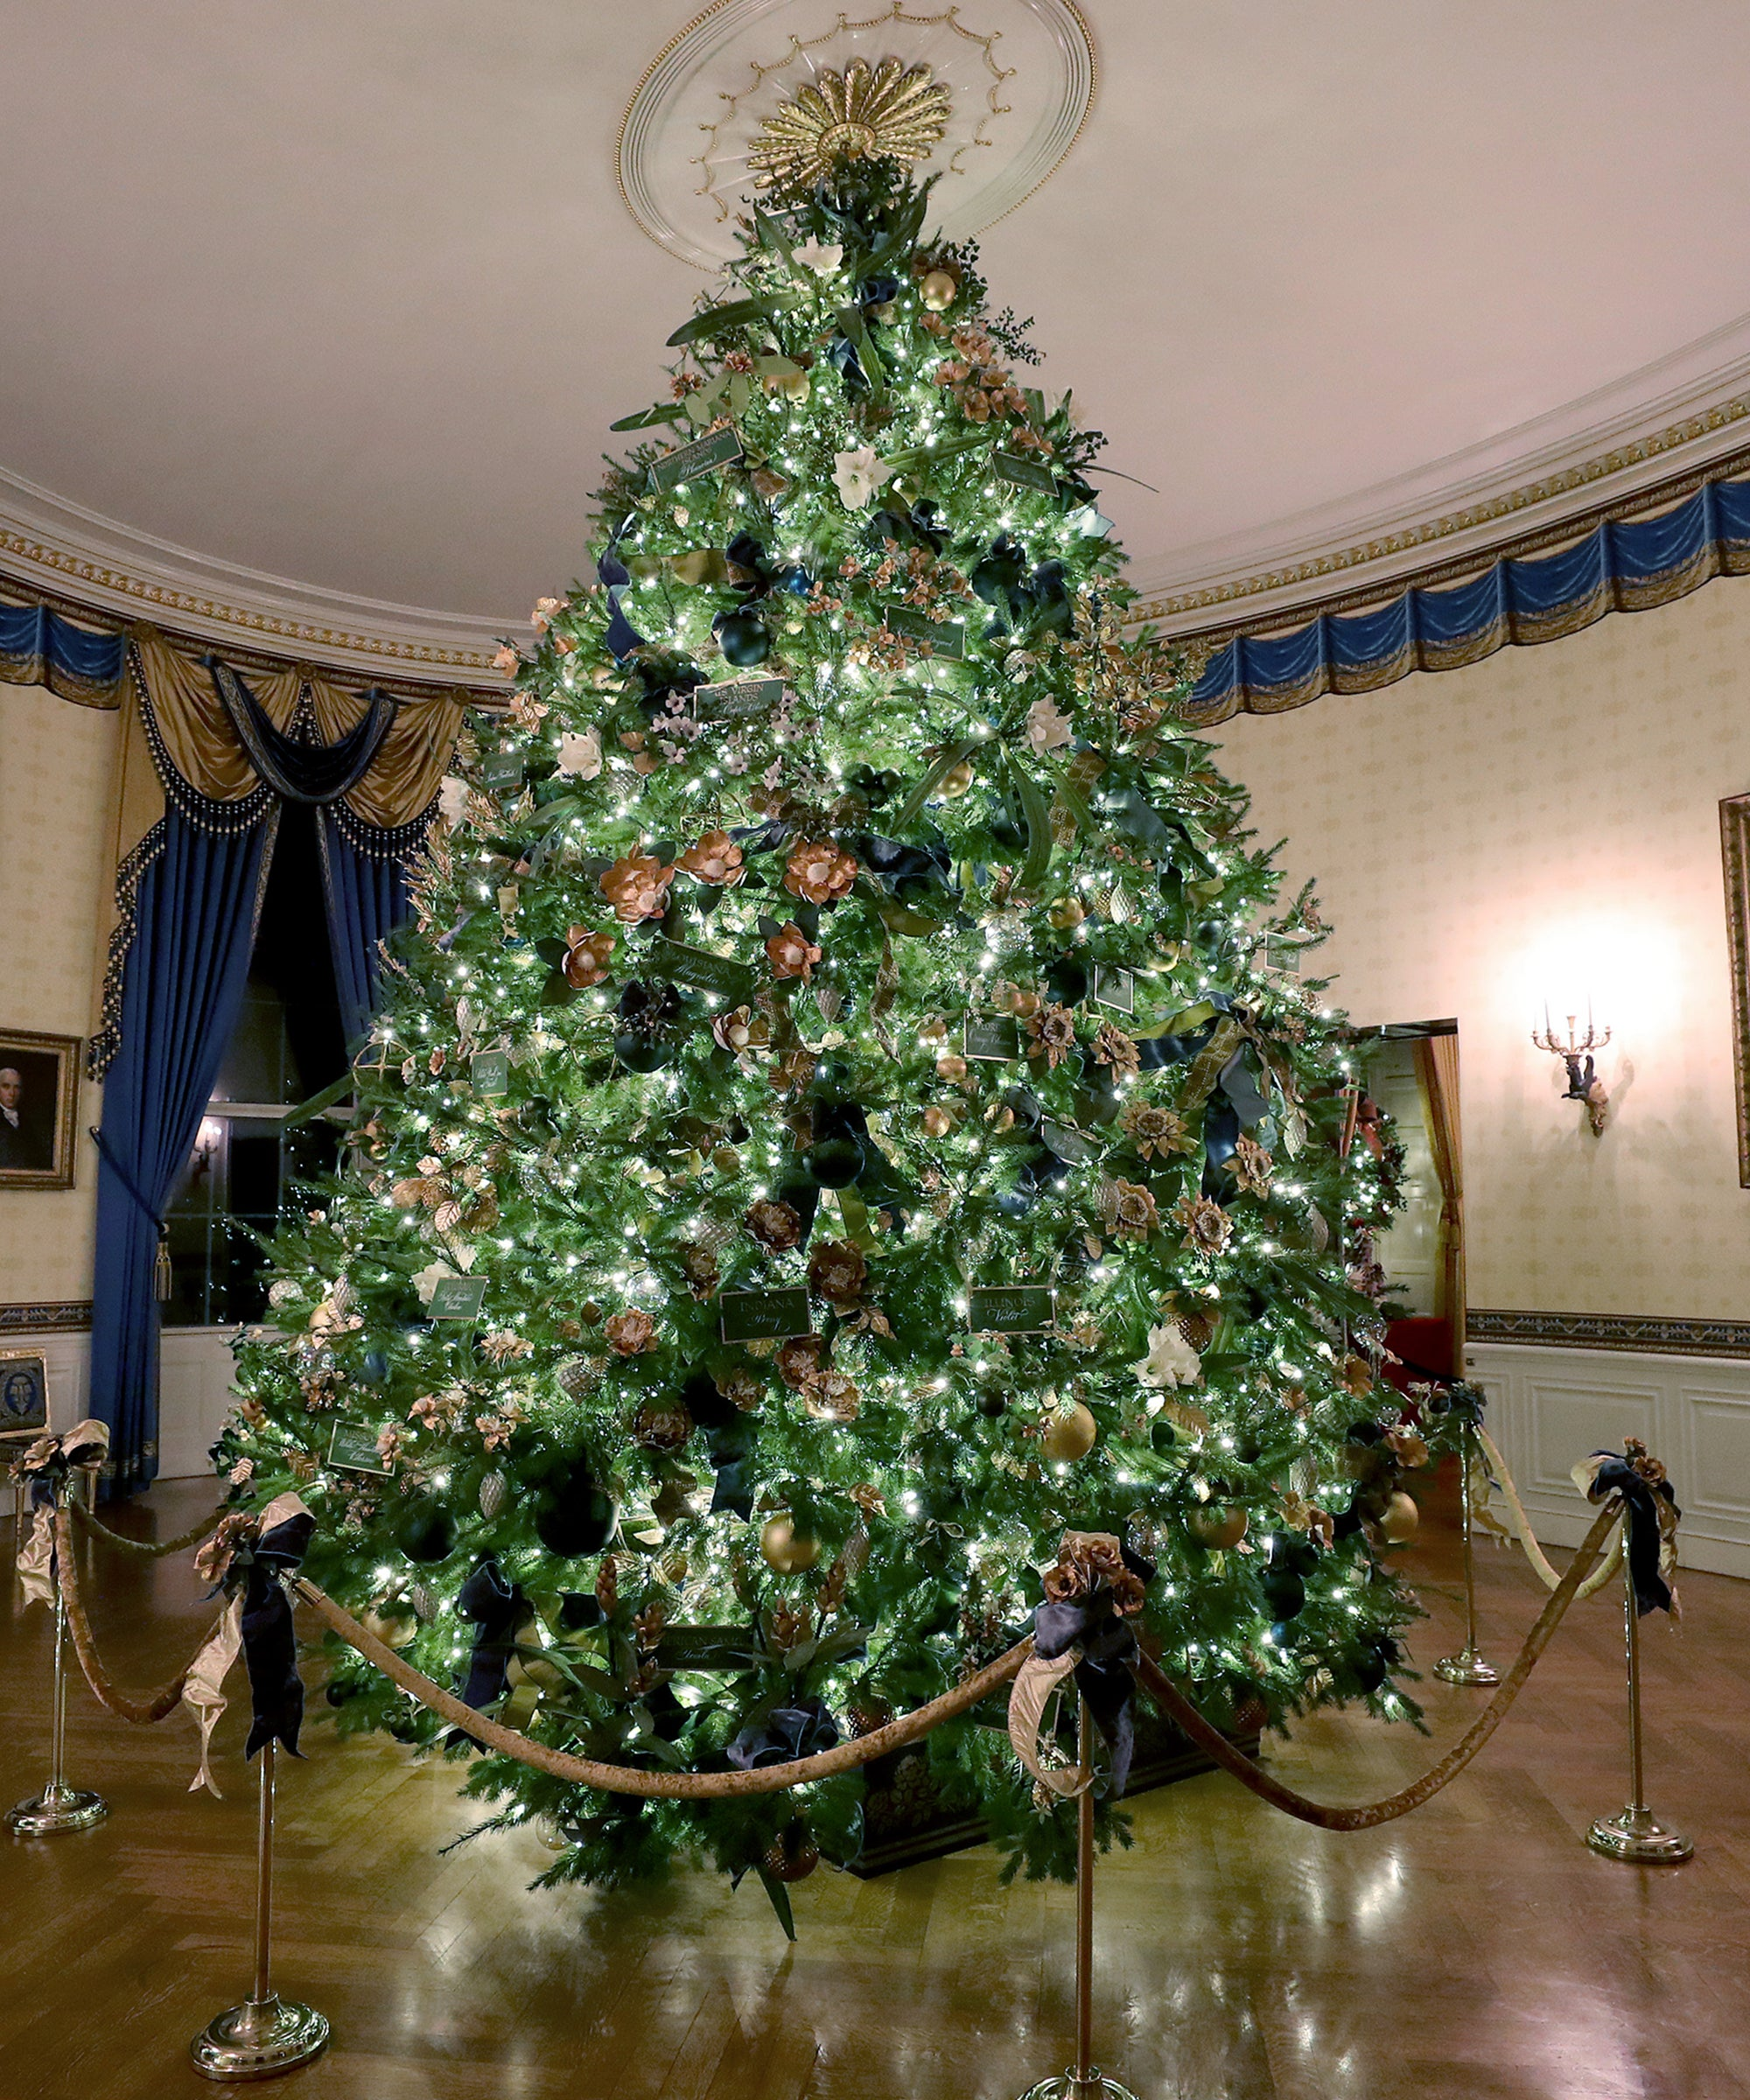 Melania, We're Disappointed With Your New Christmas Decorations. Hear Us Out.